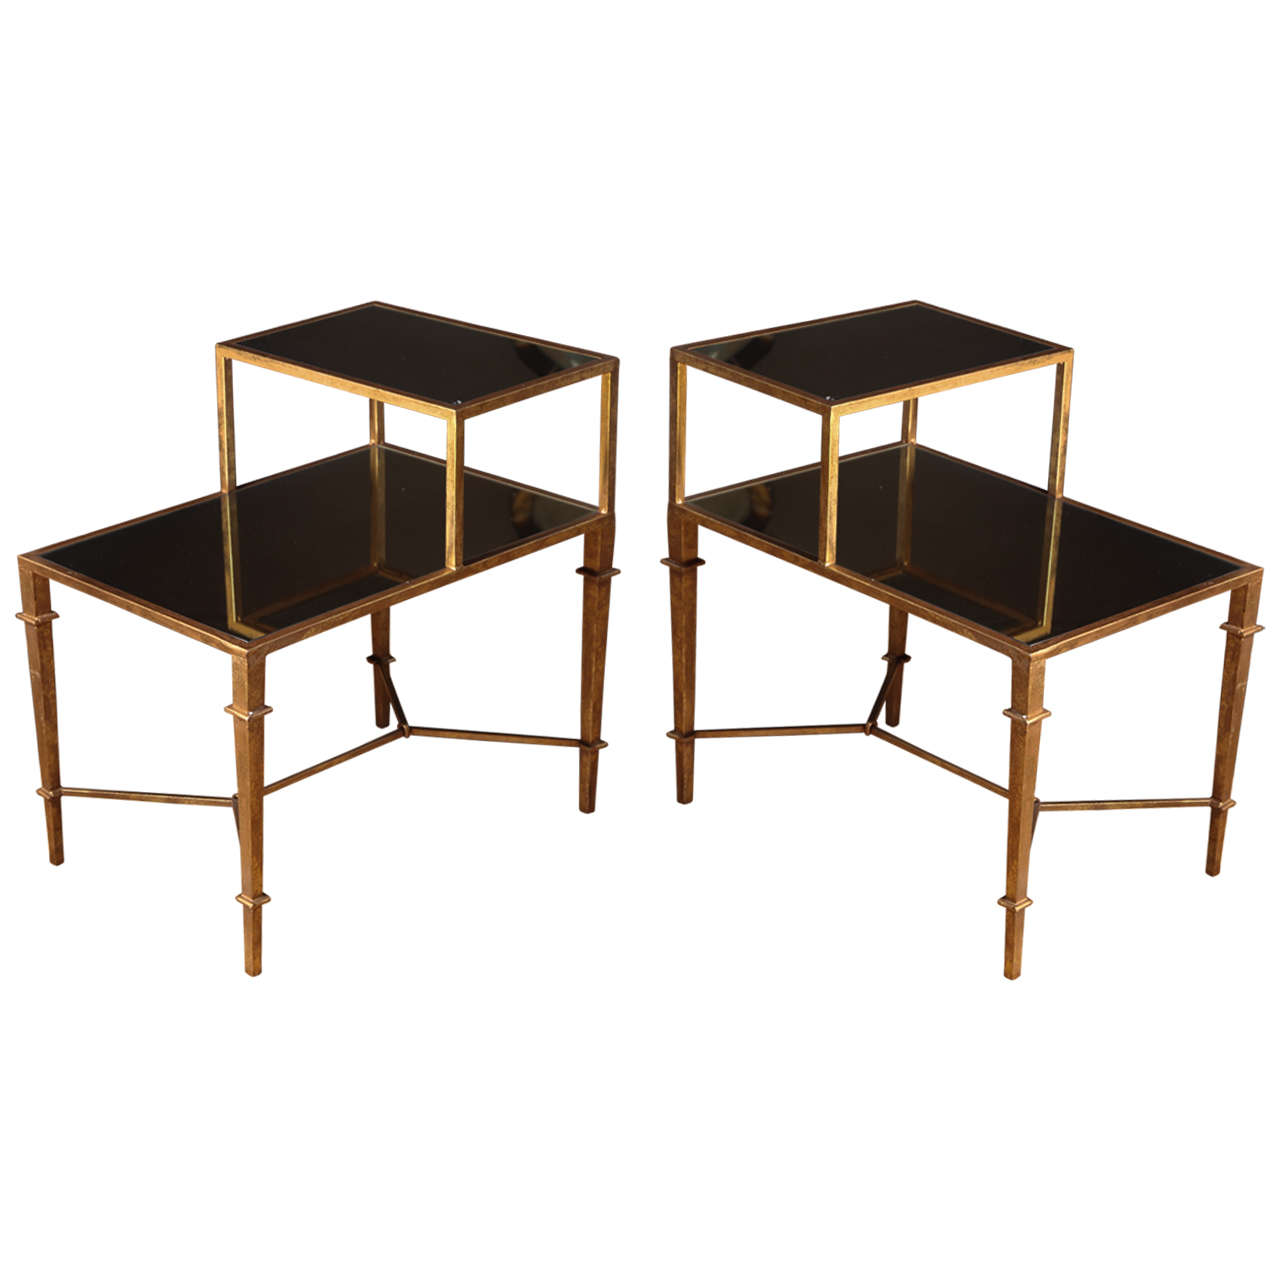 Pair of gilt bronze two tier mirrored bedside tables franc e